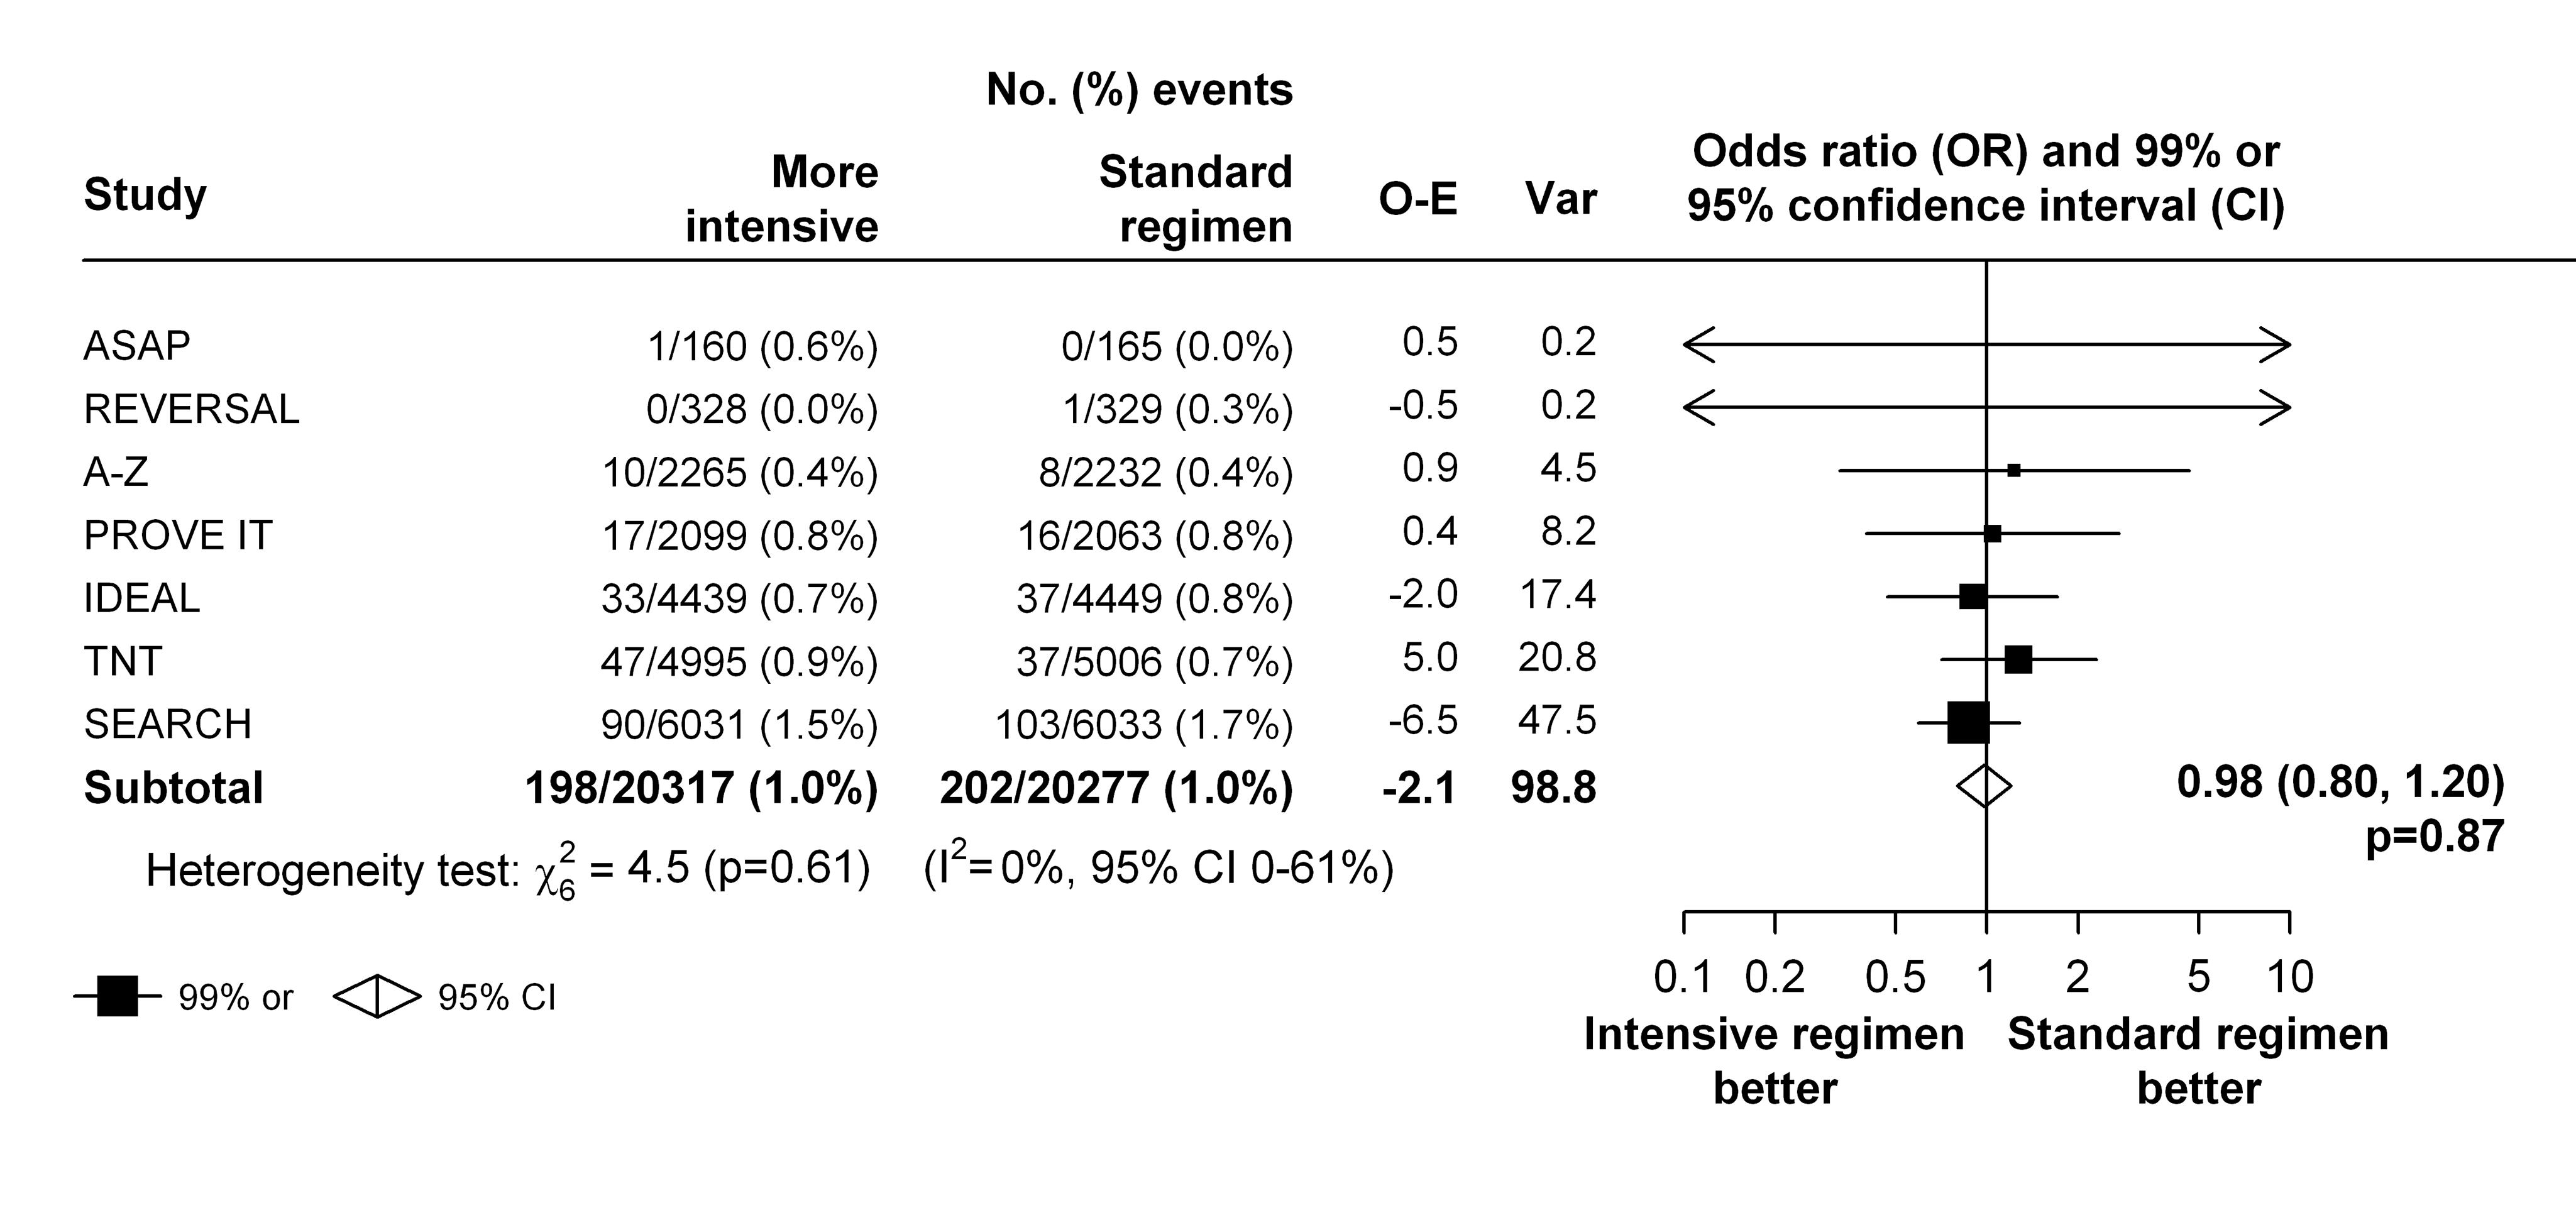 Effect of more intensive versus standard statin therapy on venous thromboembolism.